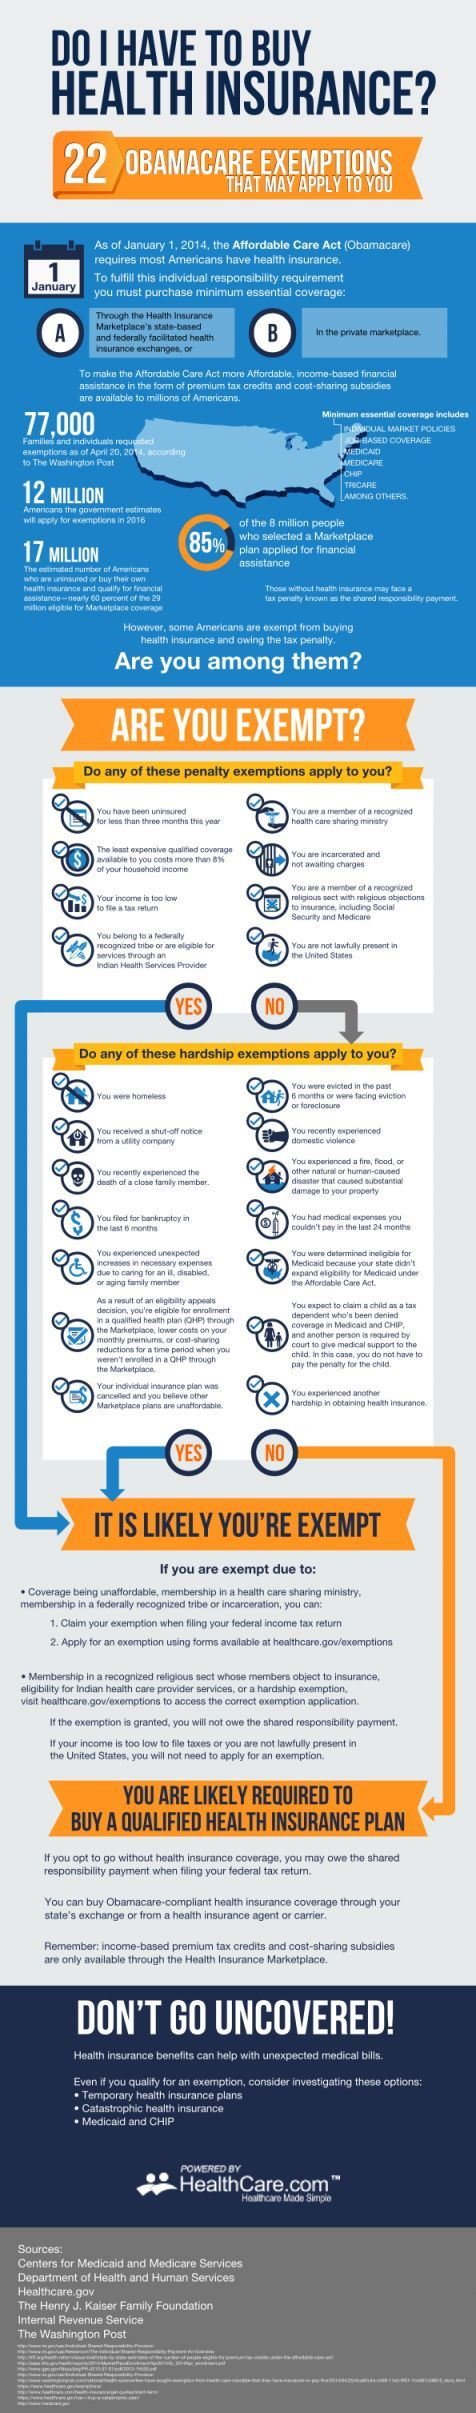 Do you have to buy health insurance? 22 Obamacare ...